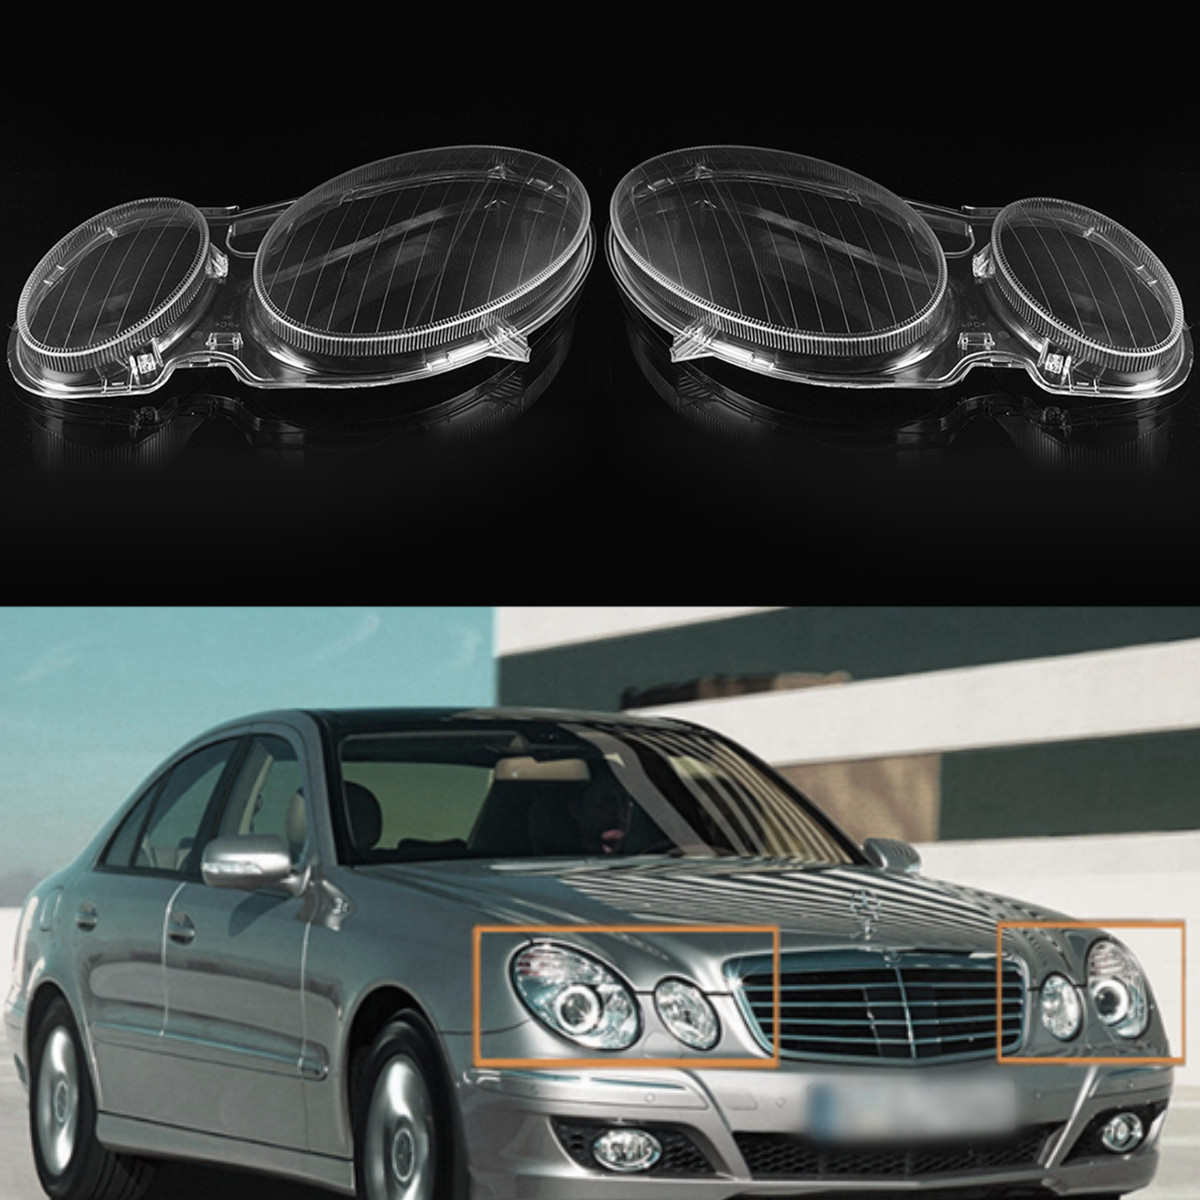 New Car Headlight Fog Light Lens Cover Shell Headlamp Lenses Cover For Mercedes For Benz E Class W211 E320 E350 2002-2008